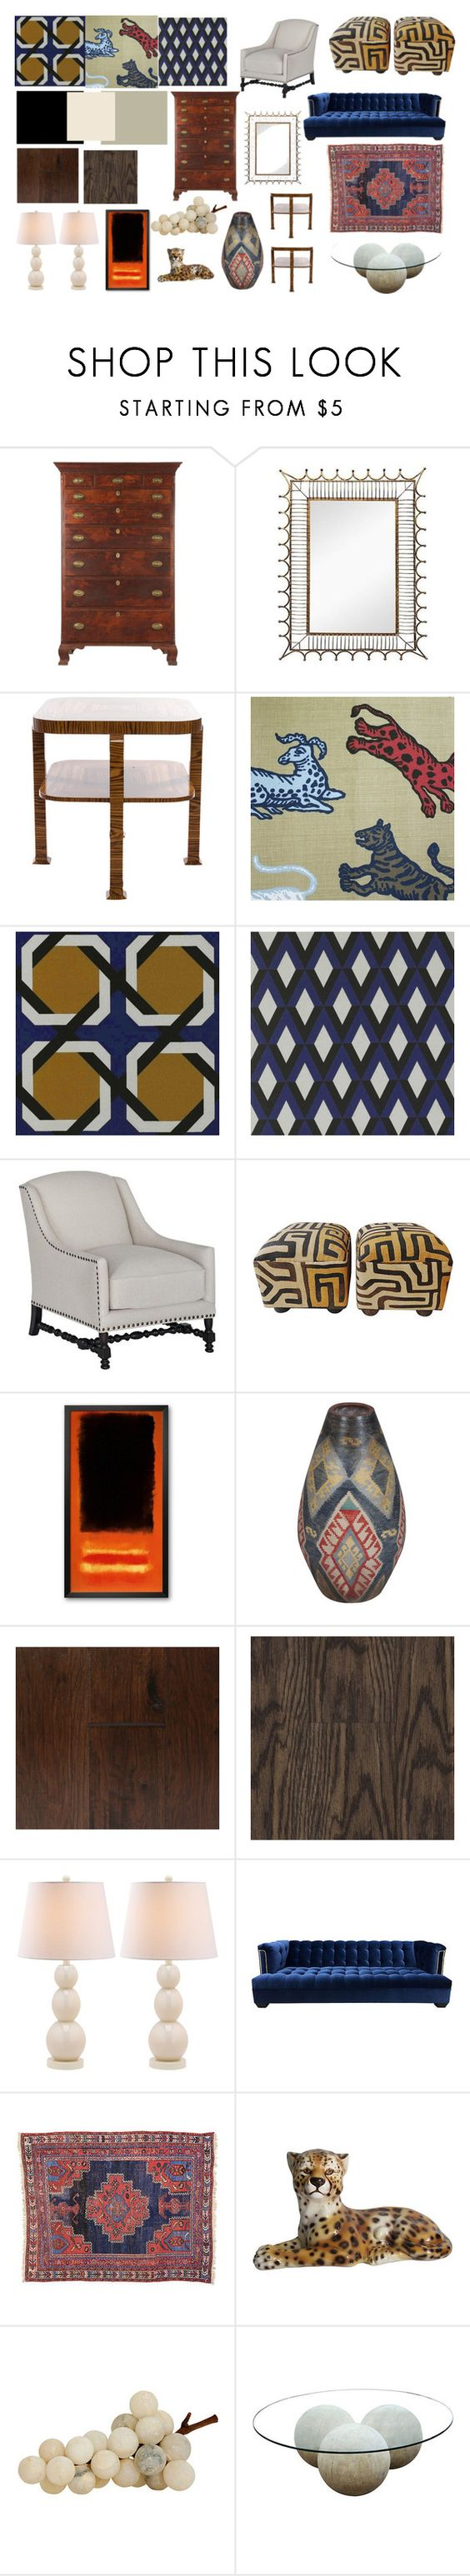 """""""Living Room Mood Board"""" by betty-king-pope ❤ liked on Polyvore featuring interior, interiors, interior design, home, home decor, interior decorating, Mirror Image Home, Sandberg Furniture, Somette and Safavieh"""